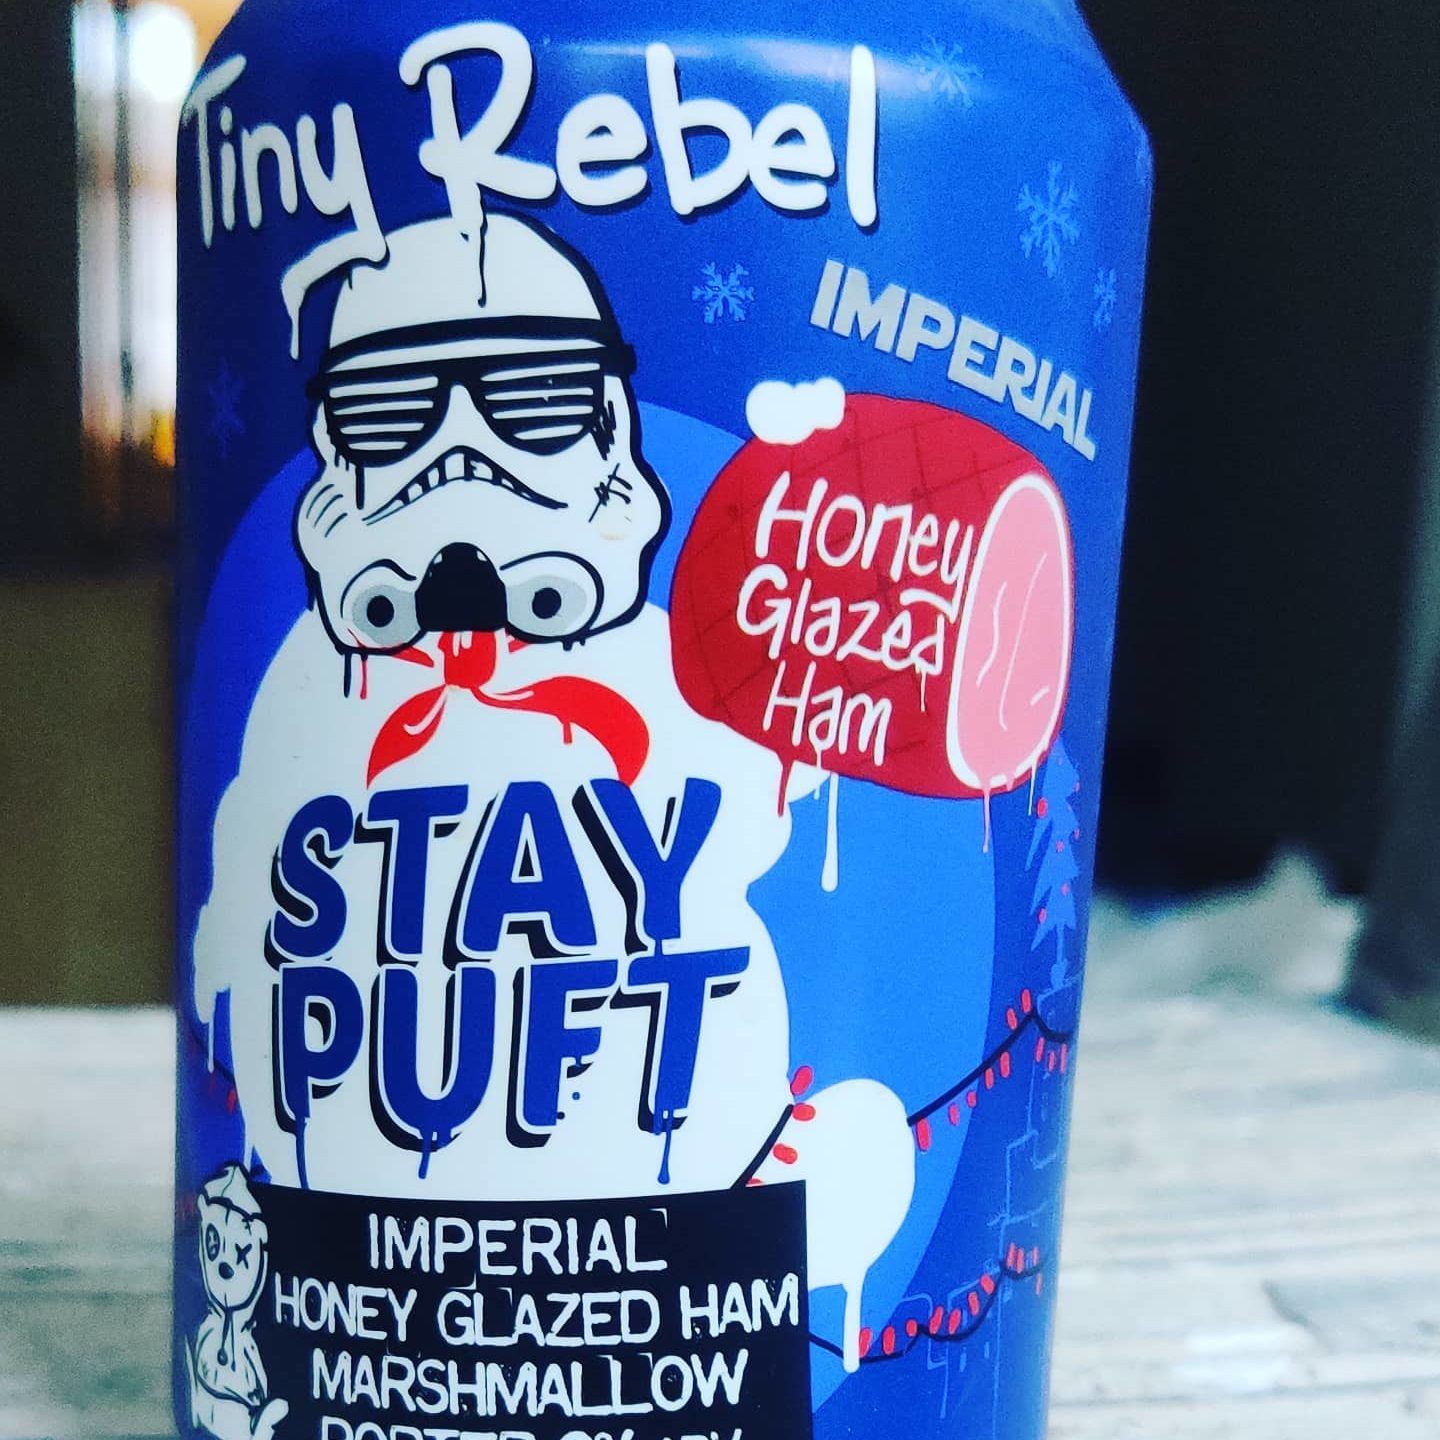 Finally. A beer made with the tasty flavour of ham. Because pork was that final missing ingredient. #idontevenknowwhatsgoingonanymore